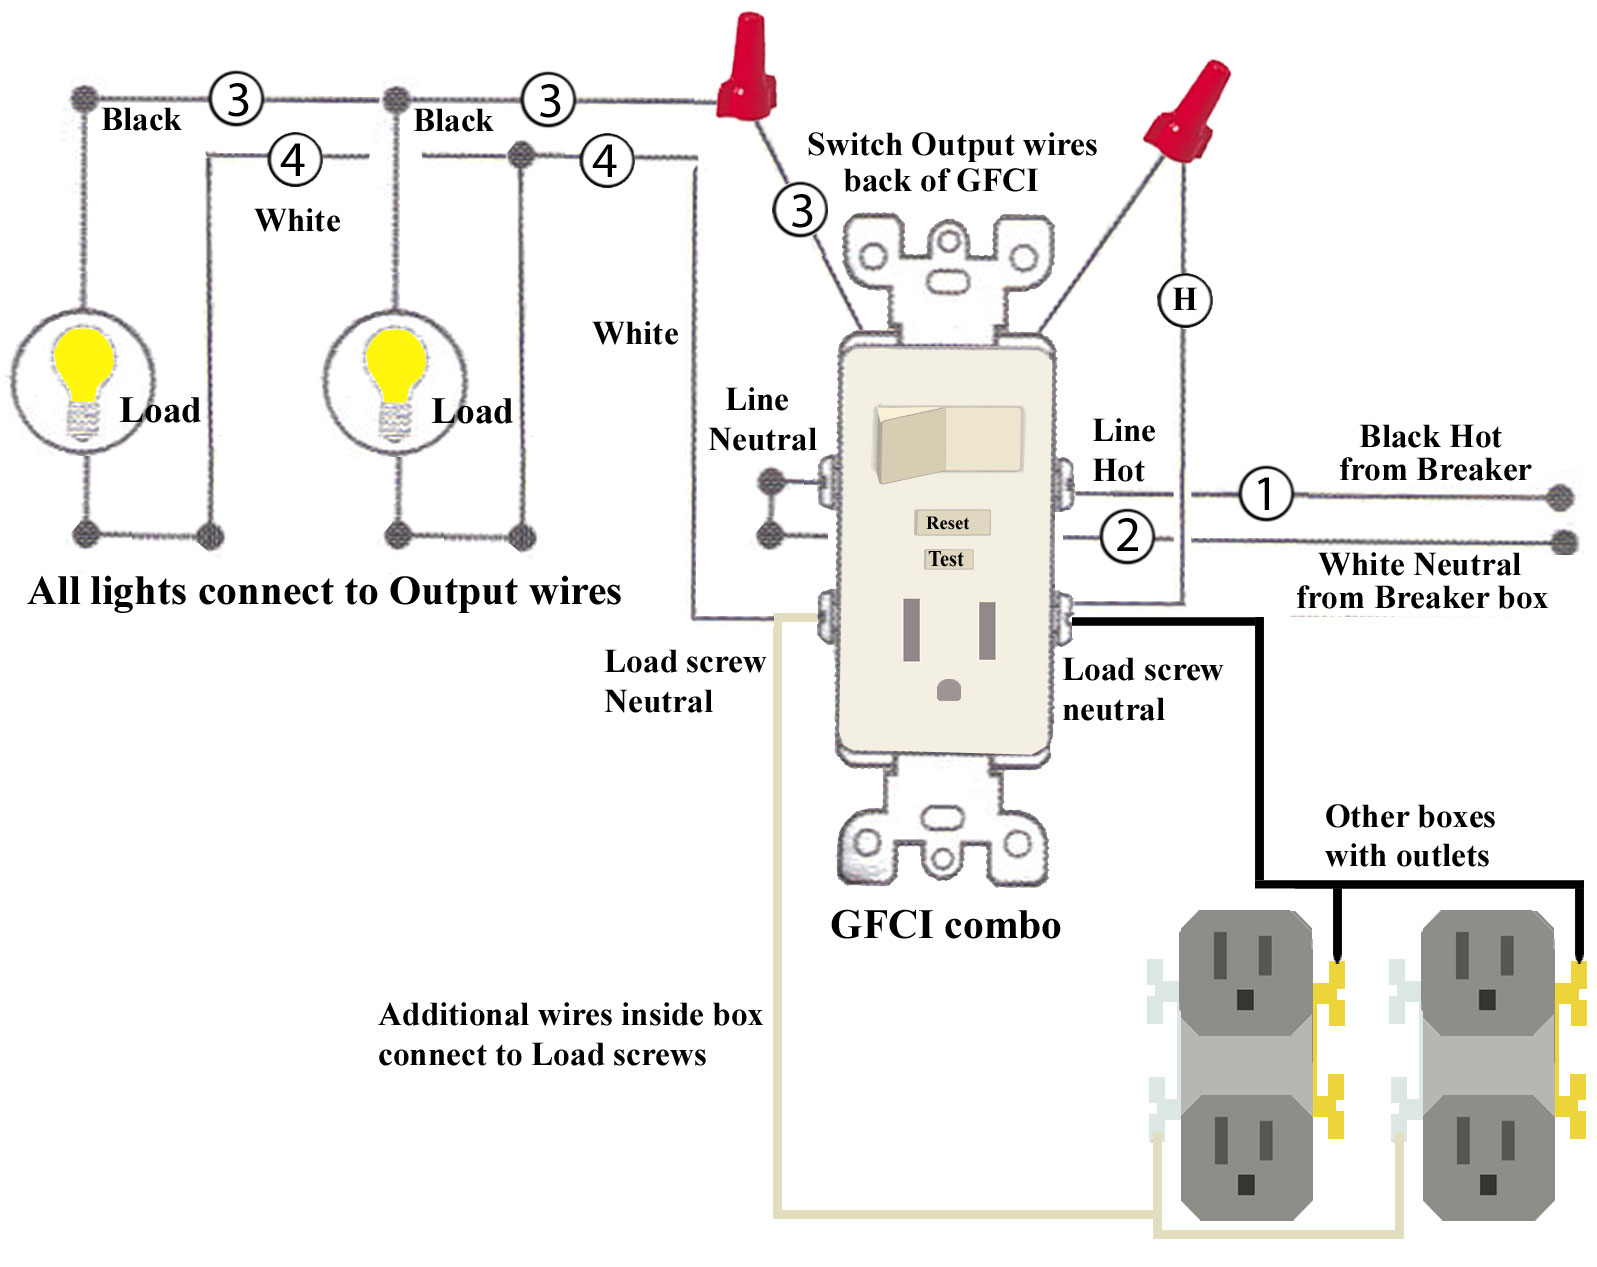 hight resolution of wiring a light switch and gfci schematic free download wiring diagram leviton gfci wiring diagram multiple